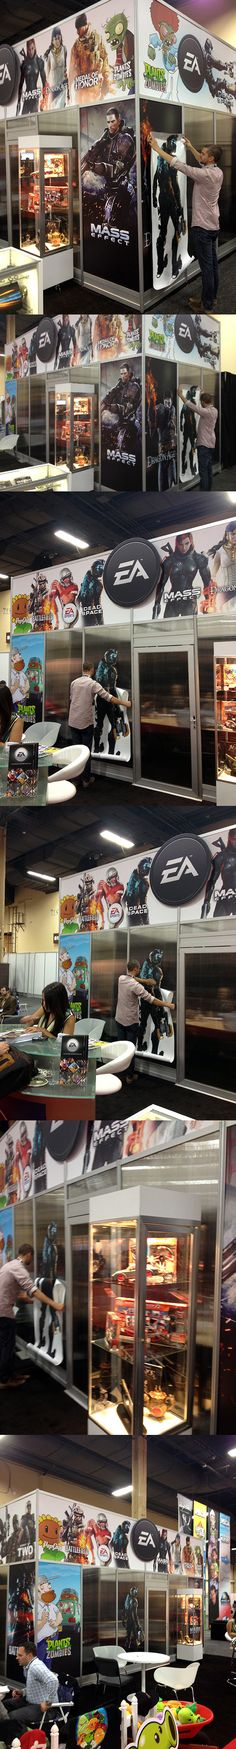 WALLS 360 created  a custom collection of large-format wall graphics for EA's booth at the Las Vegas Licensing Expo.     http://www.Walls360.com/EA